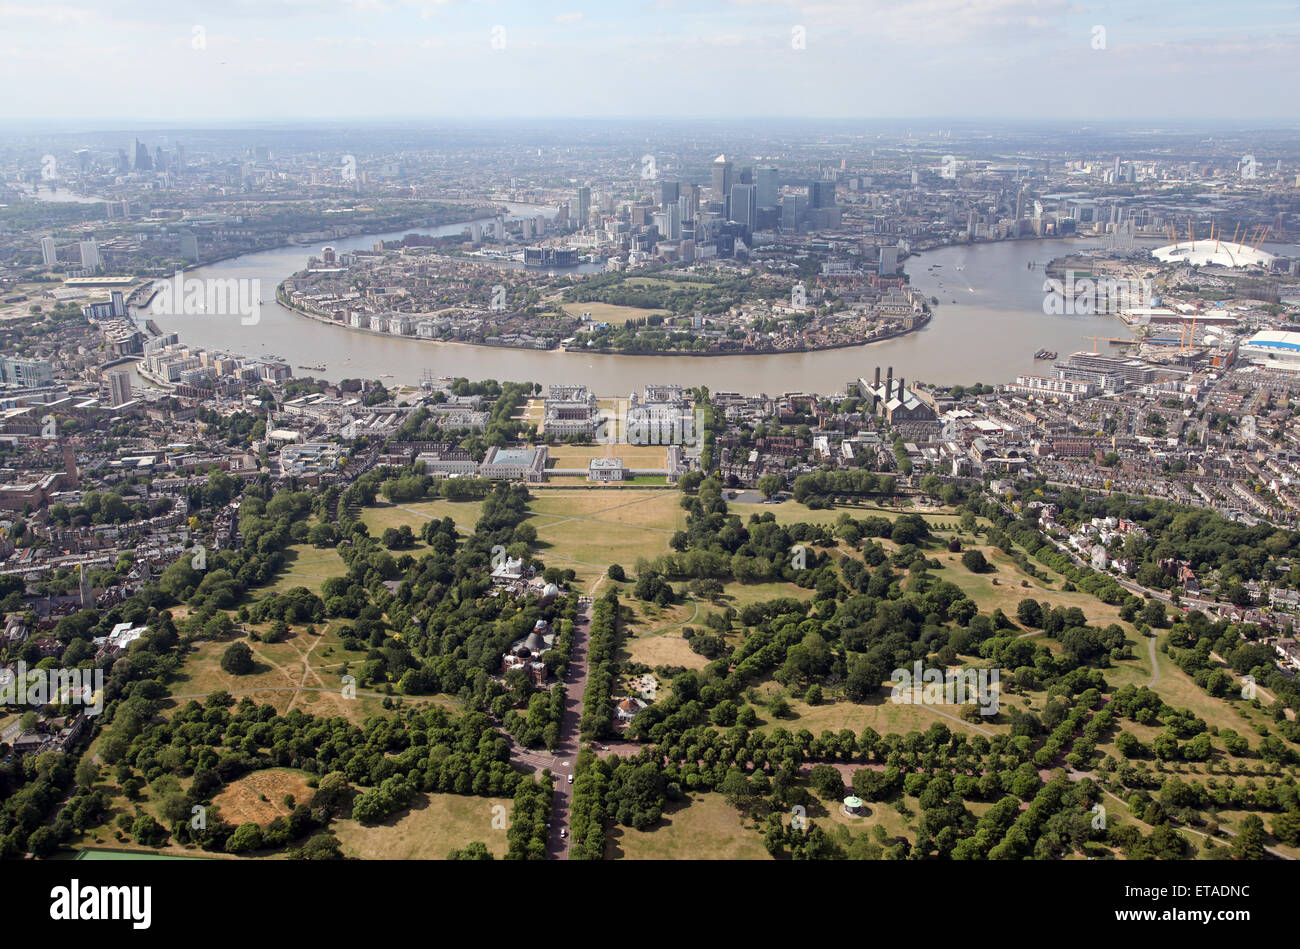 aerial view of Greenwich and the Isle of Dogs in East London, UK - Stock Image